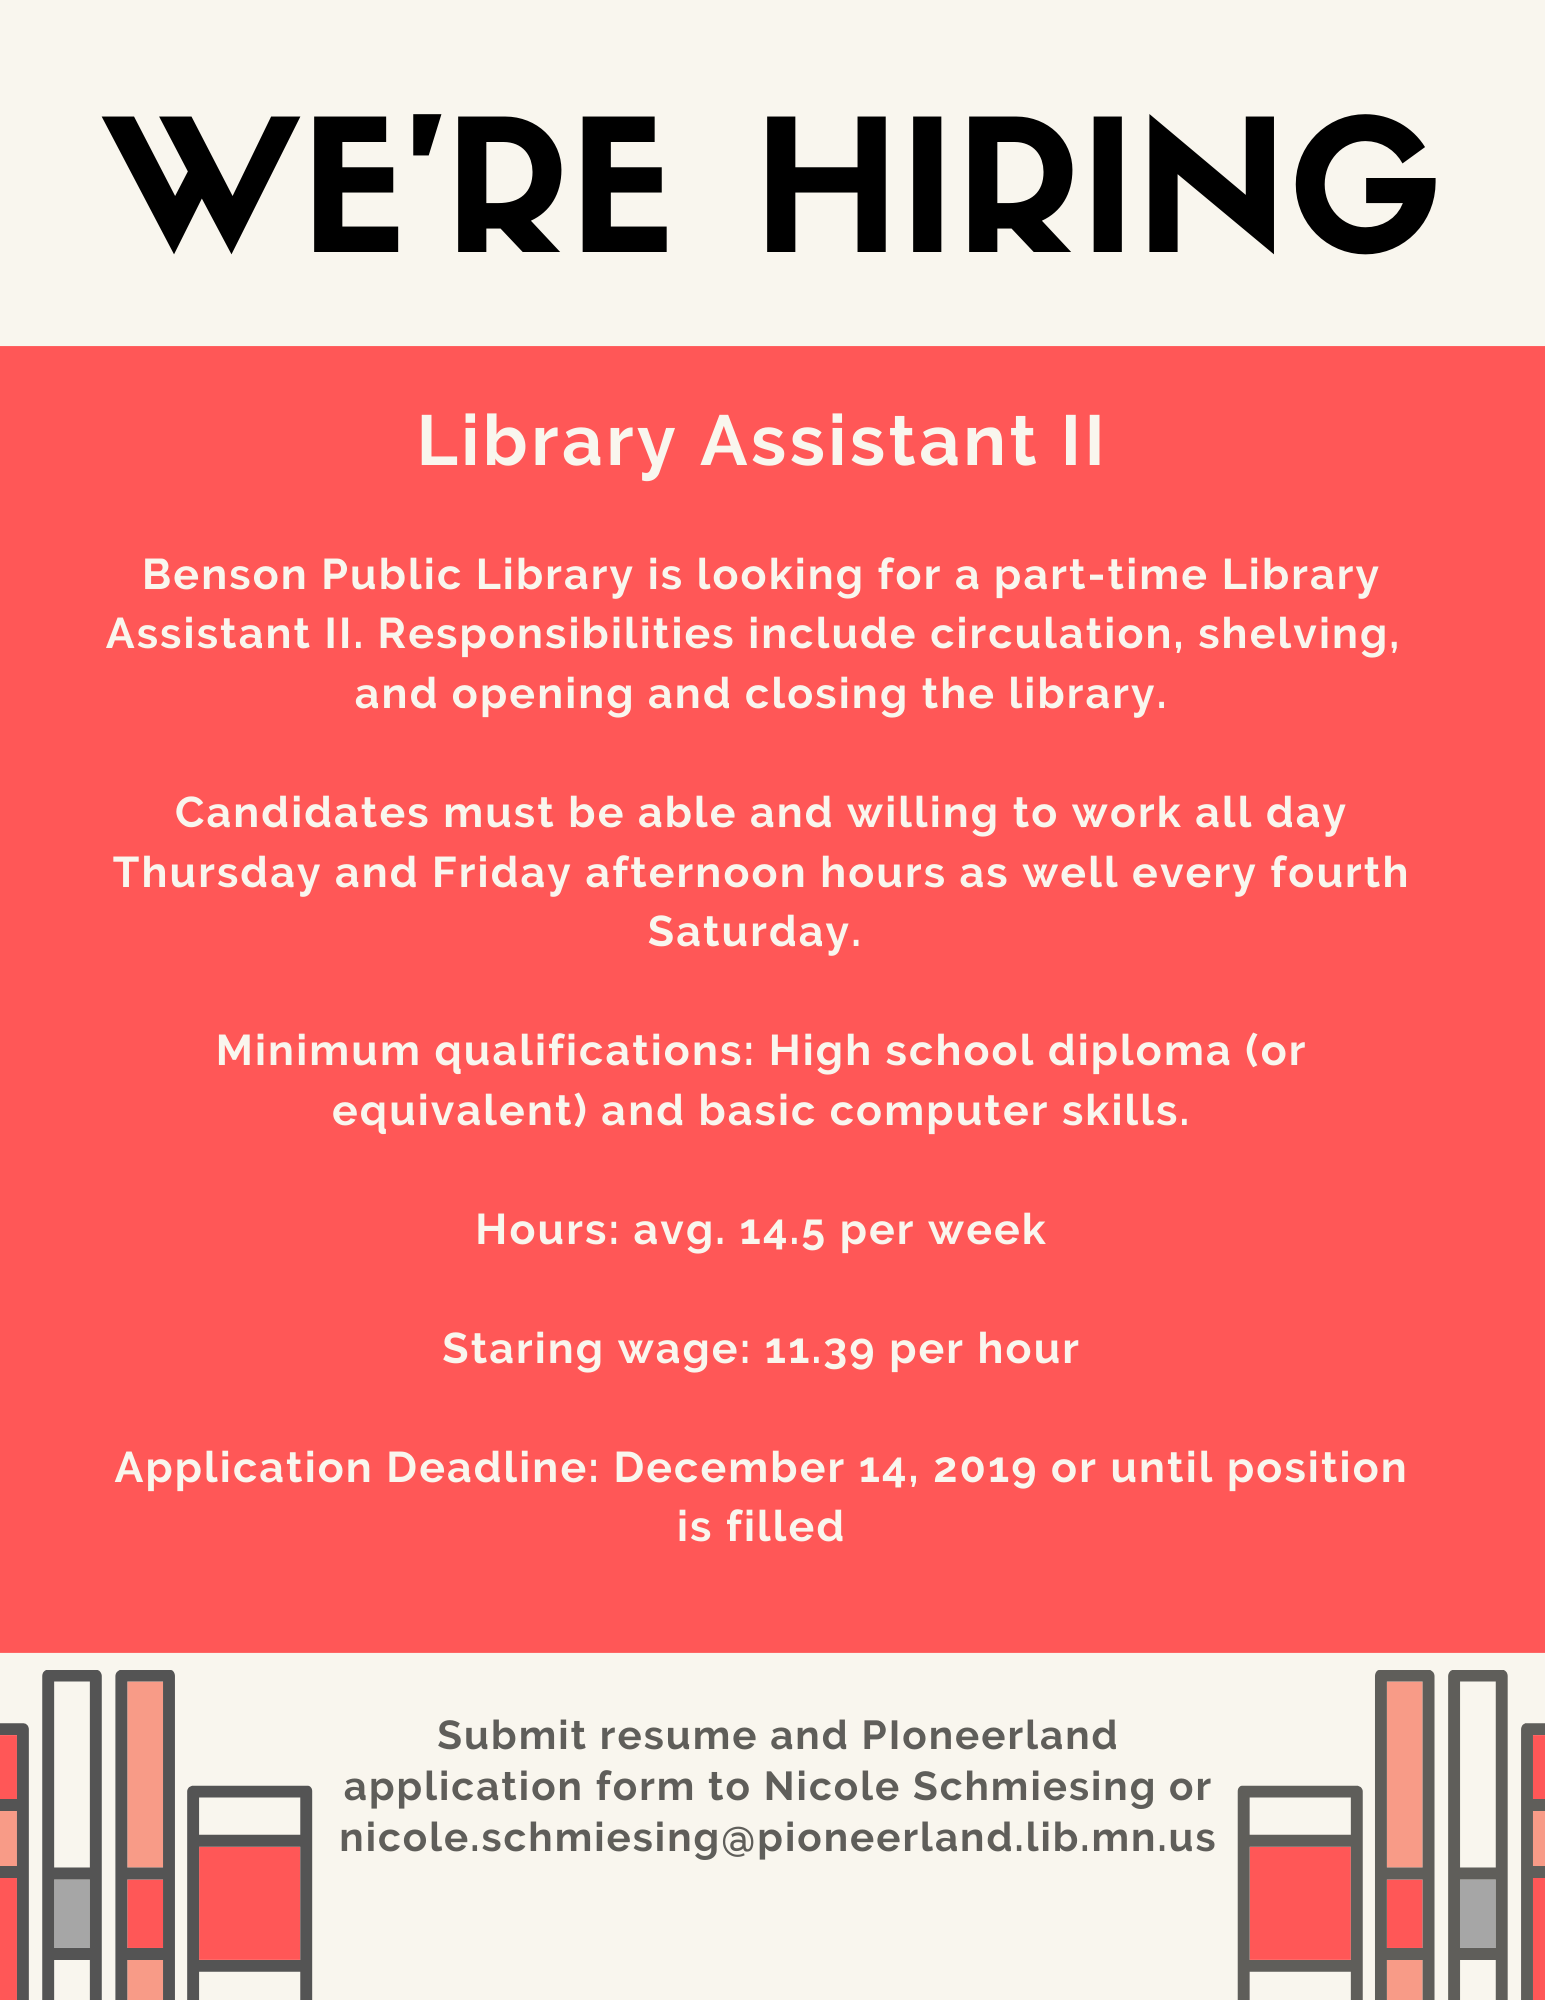 We're Hiring for a Library Assistant II. Minimum qualifications: high school diploma and basic computer skills. Starting wage: $11.39 To apply, submit resume and application form to Nicole Schmiesing at the Benson Library or email her at nicole.schmiesing@pioneerland.lib.mn.us. Applications accepted until December 14 or until position is filled.